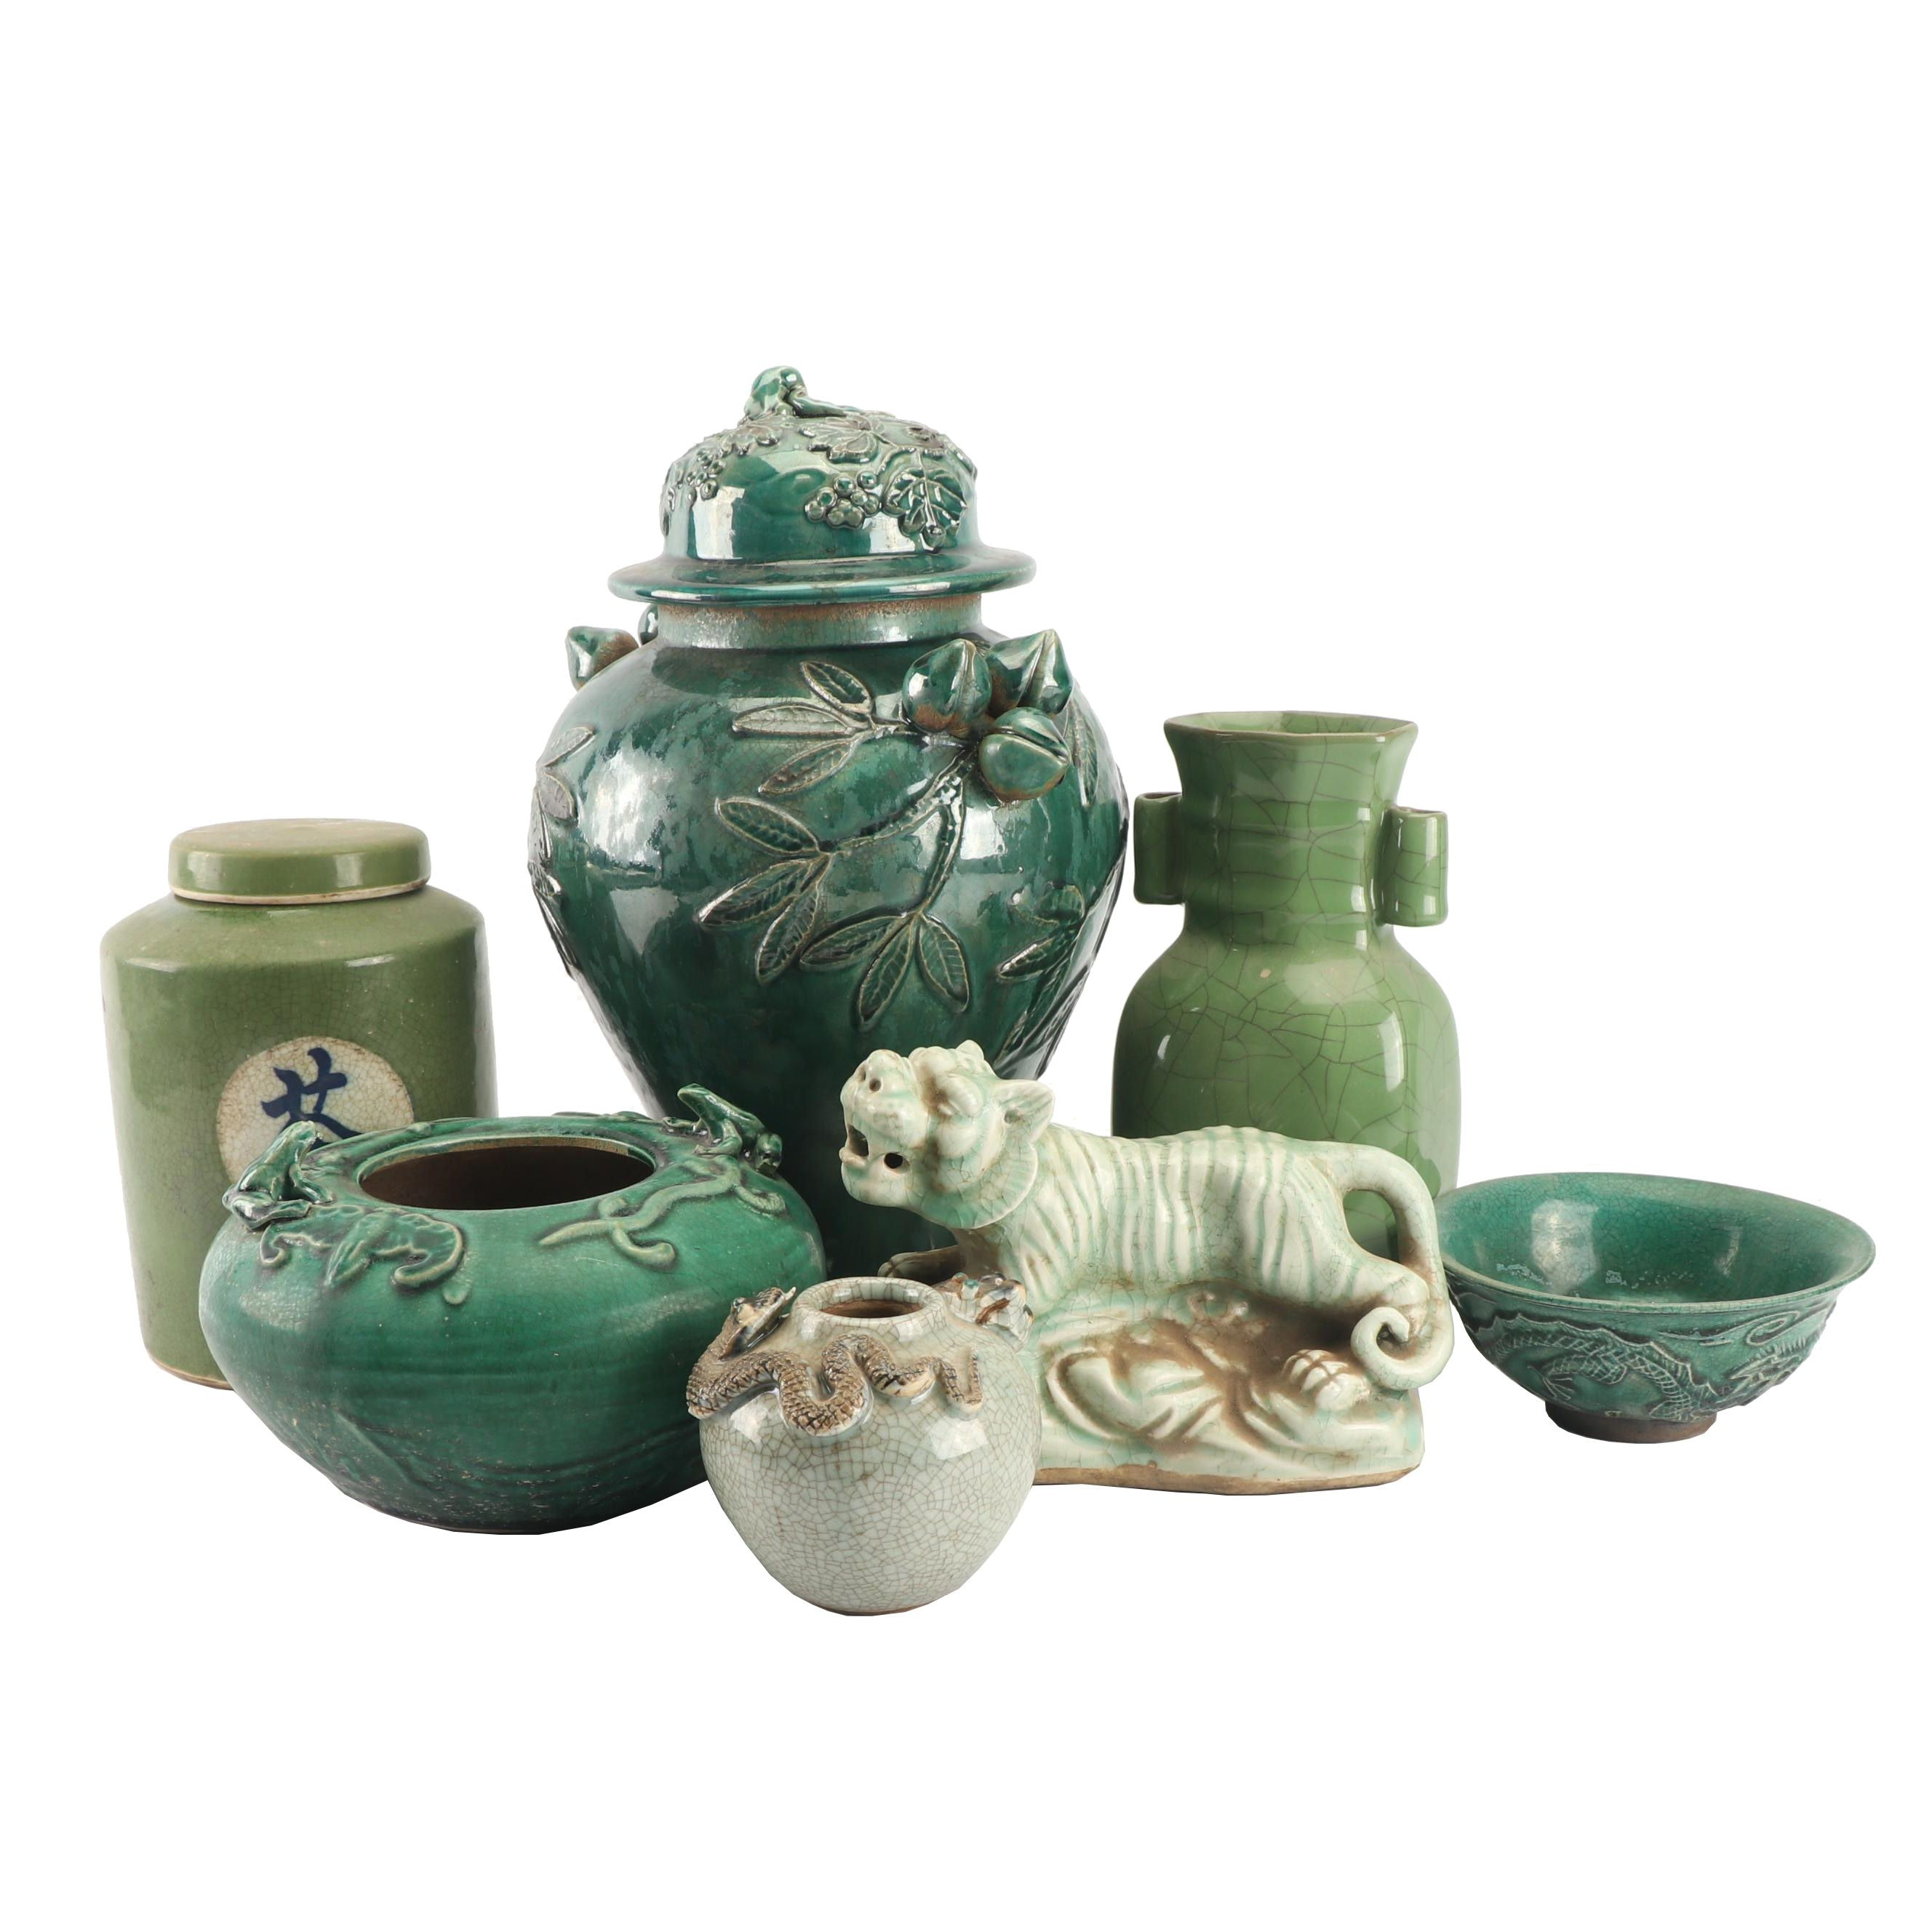 Chinese Green Hued Vessels and Lion Figurine